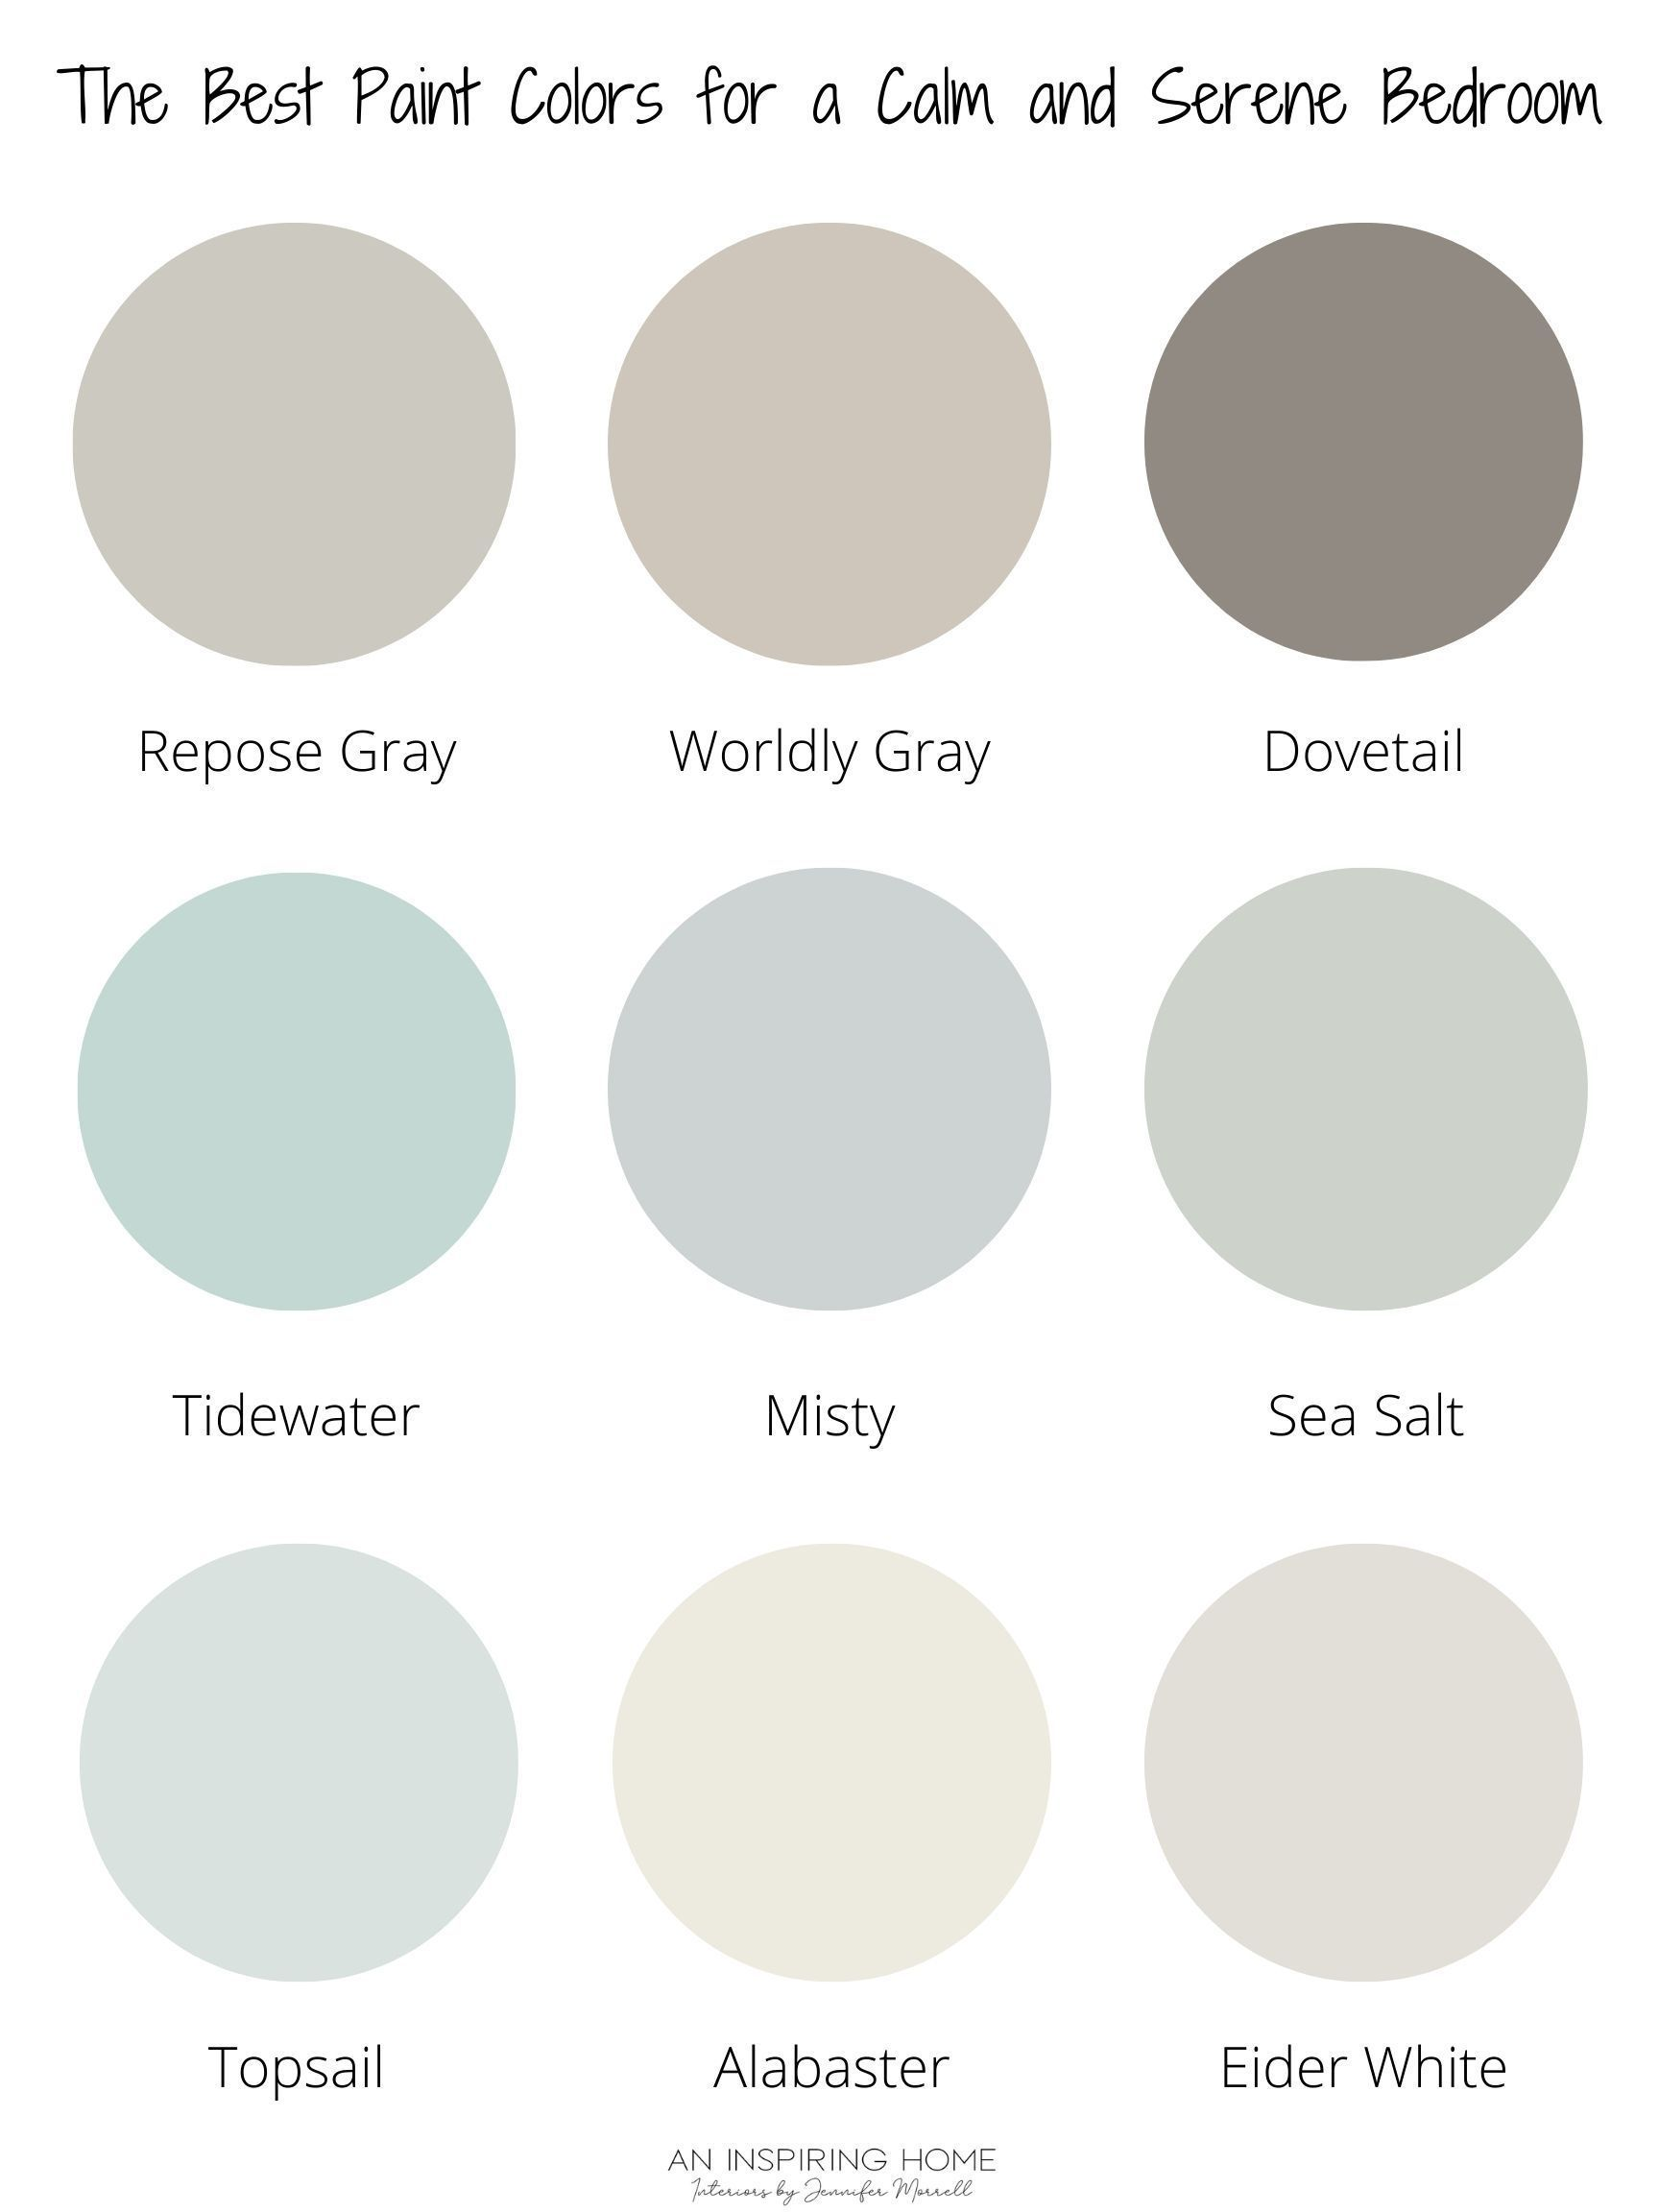 The Best Paint Colors For A Calm And Serene Bedroom Bedroom Paint Color Inspiration Best Bedroom Paint Colors Best Bedroom Colors Tranquil bedroom paint colors